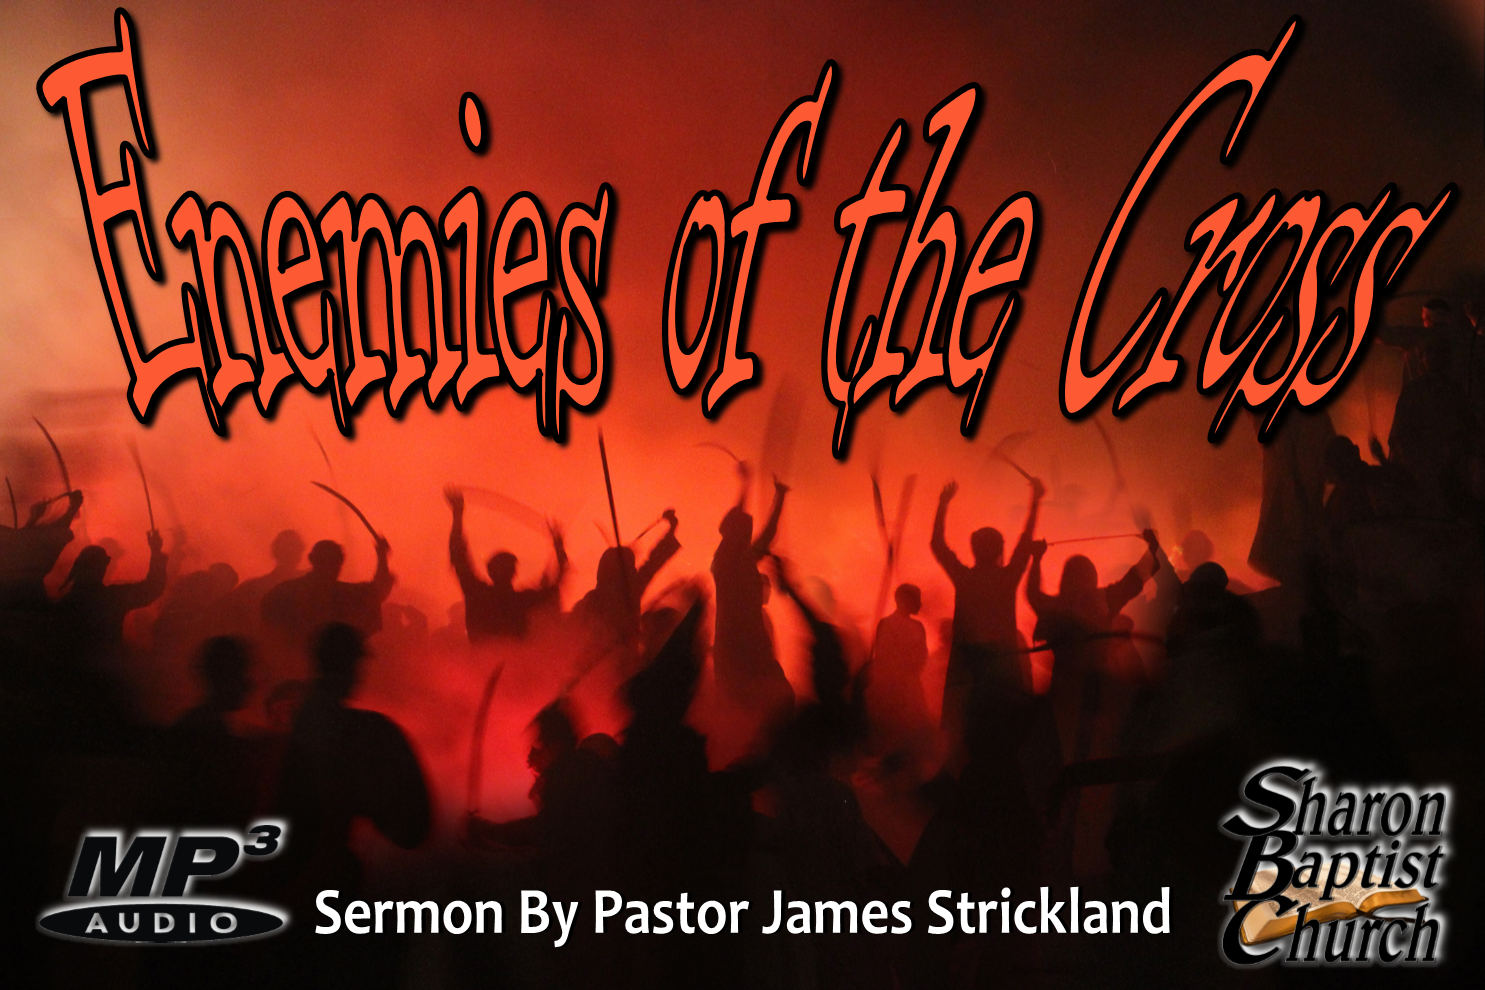 Enemies of the Cross - Sermon - Philippians 3 17-19 - 7-14-19